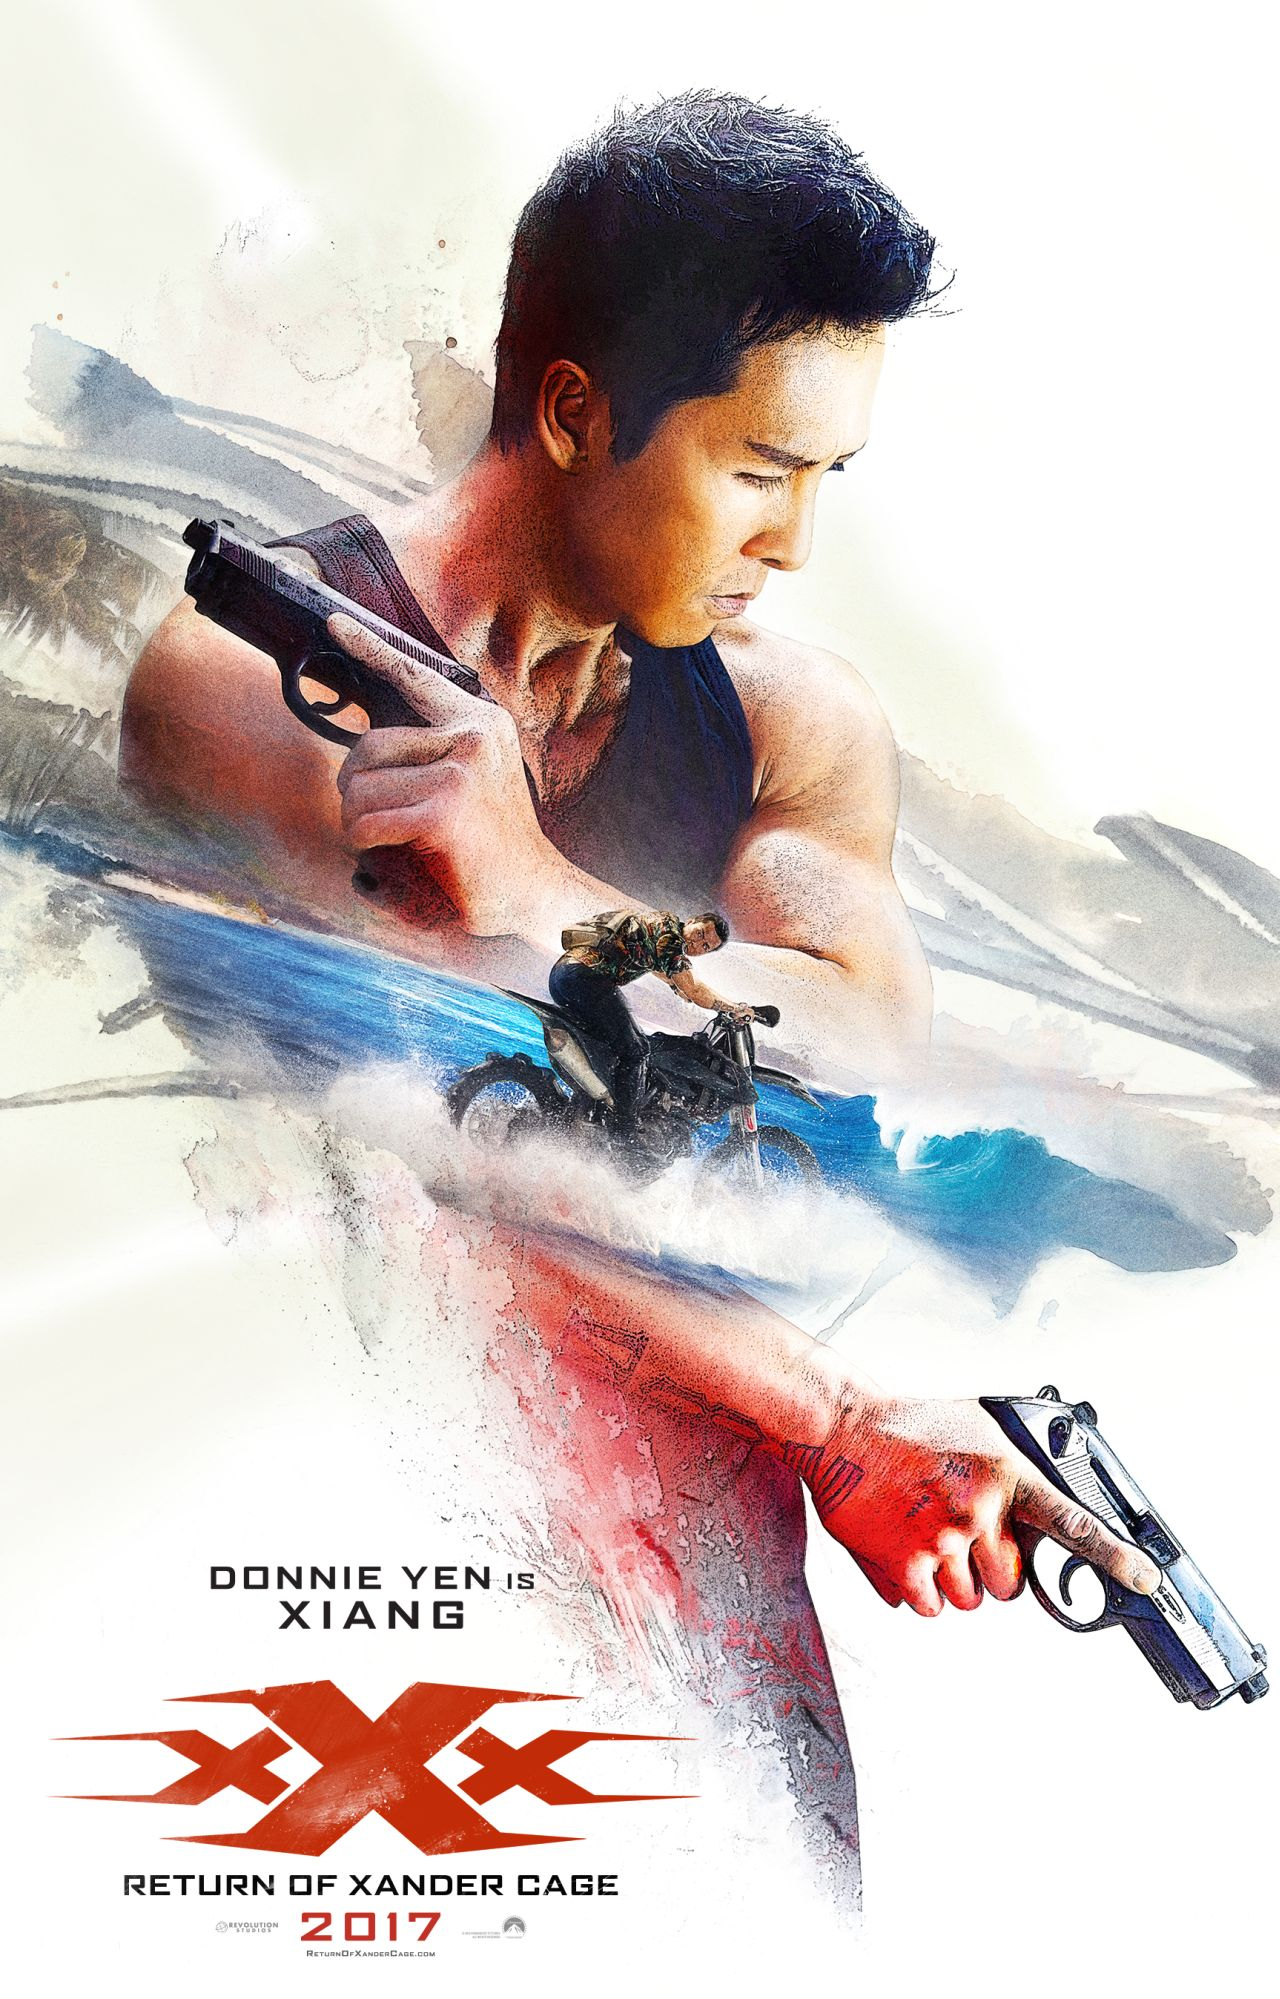 xXx: Return of Xander Cage - Il character poster di Donnie Yen